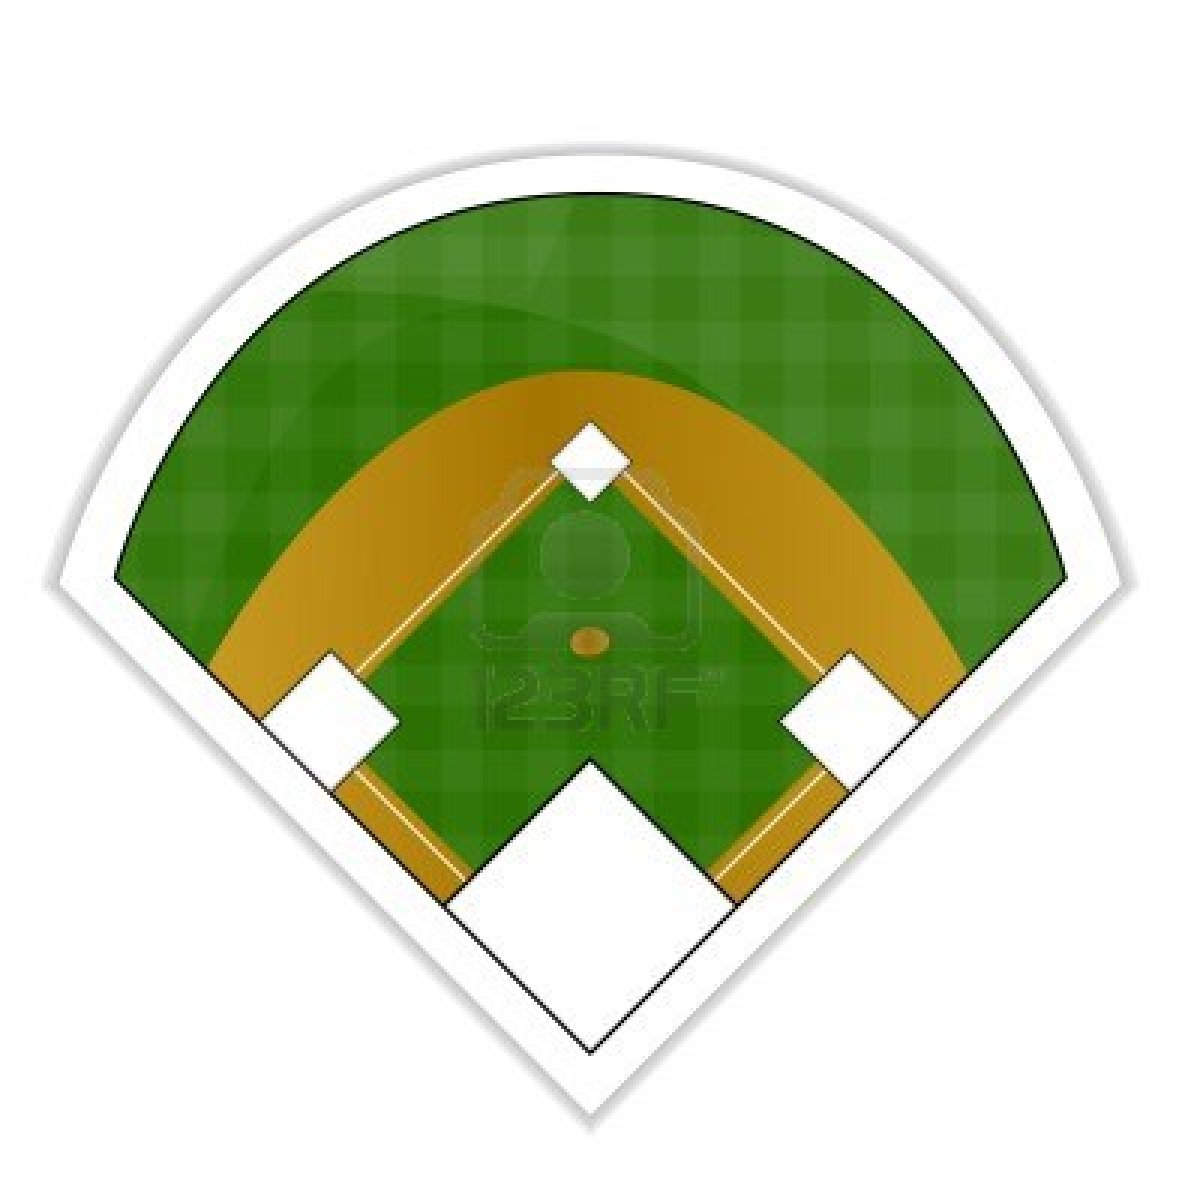 1200x1200 Baseball Stadium Clipart Many Interesting Cliparts